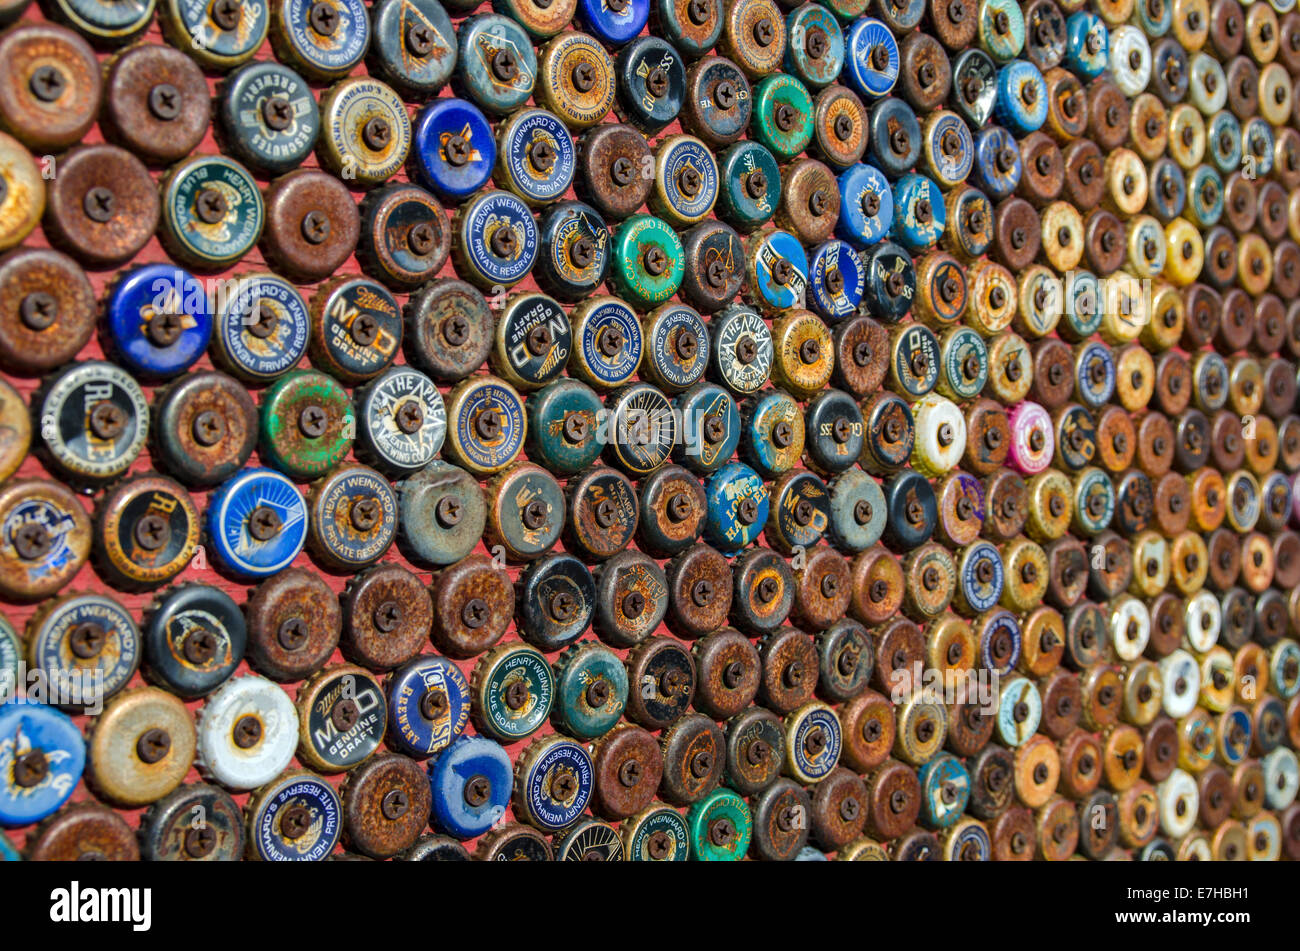 Bottle top art work, Capitol Hill, Seattle - Stock Image